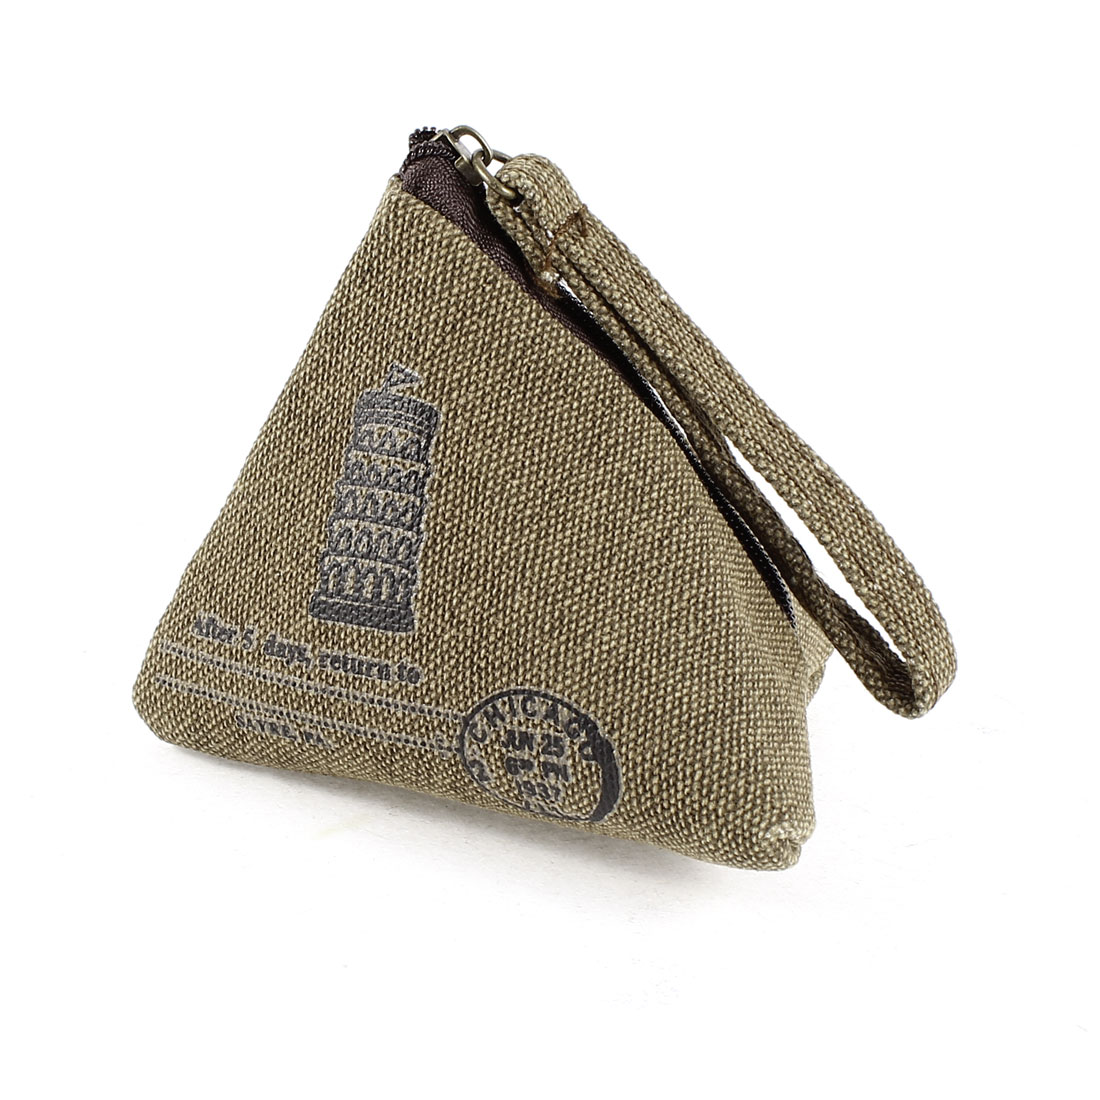 Pisa Tower Print Pyramid Shape Zipper Closure Cash Coin Money Key Credit Card Purse Bag Brown for Ladies